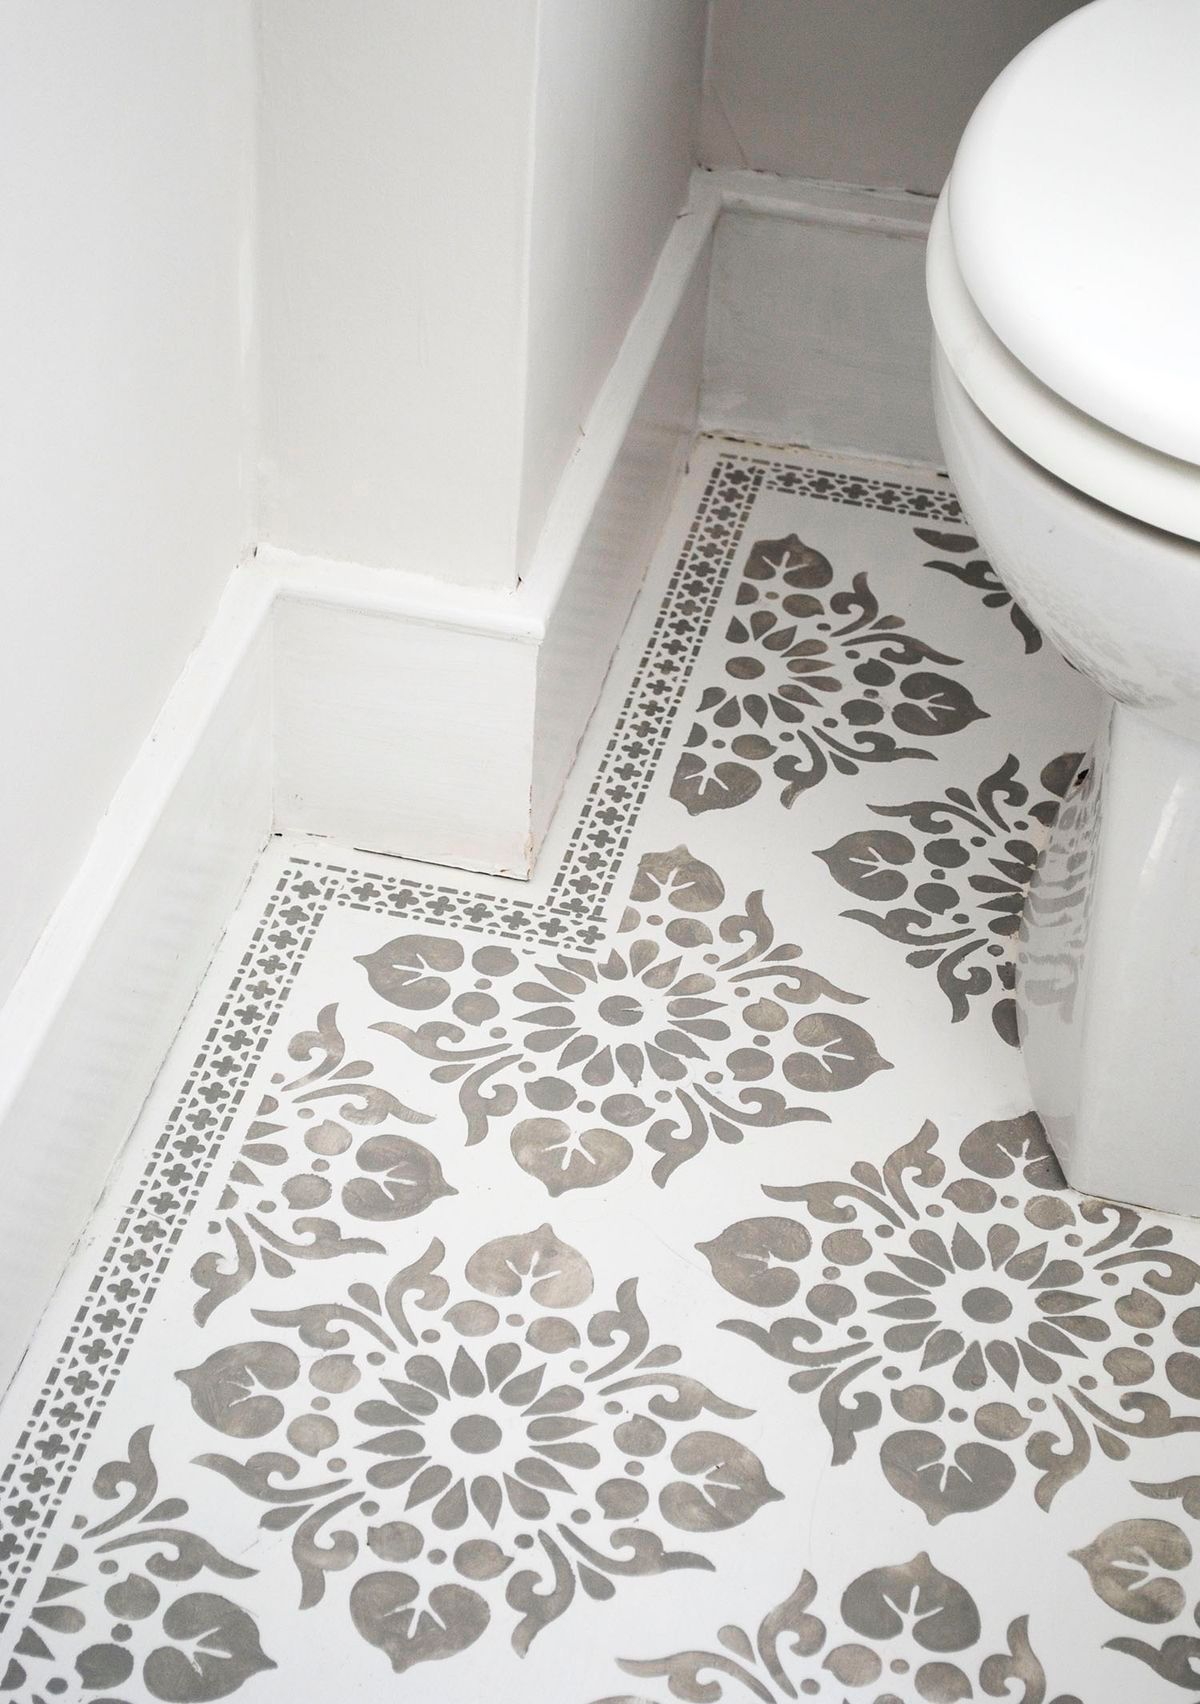 Painted Bathroom Floor Tile | Bathroom | Pinterest | Painted ...